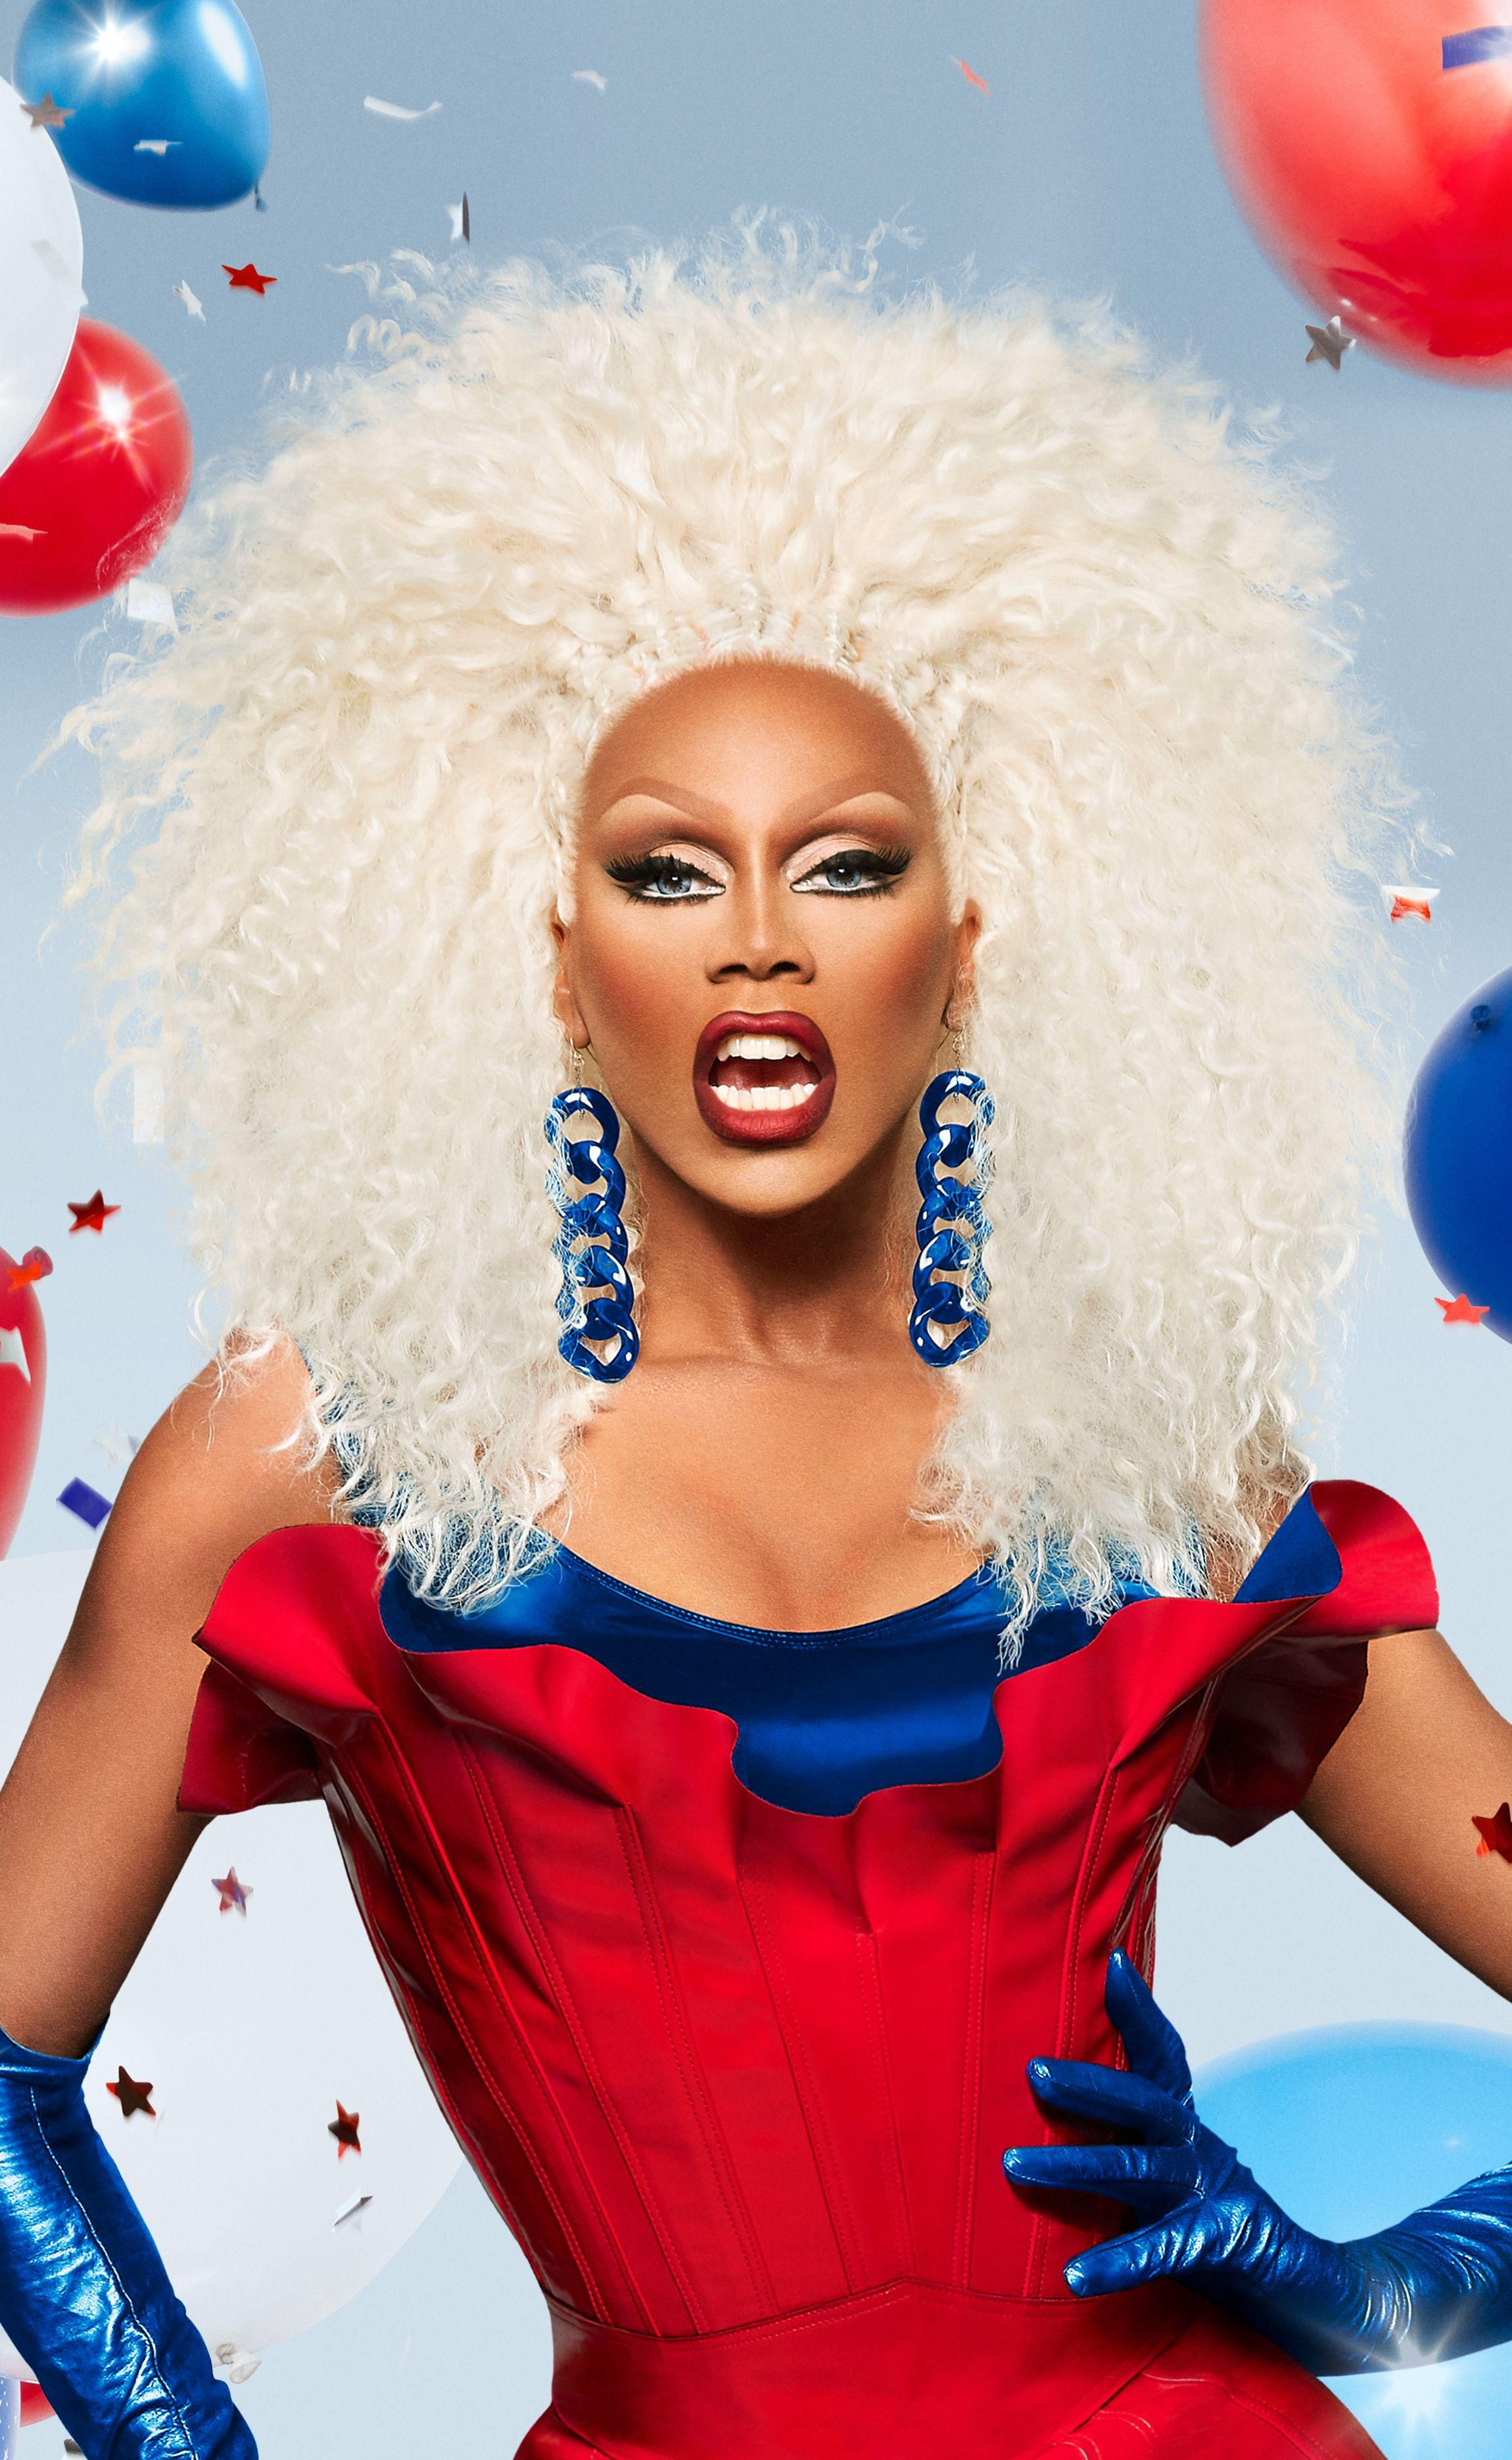 RuPaul dressed in red, white, and blue drag